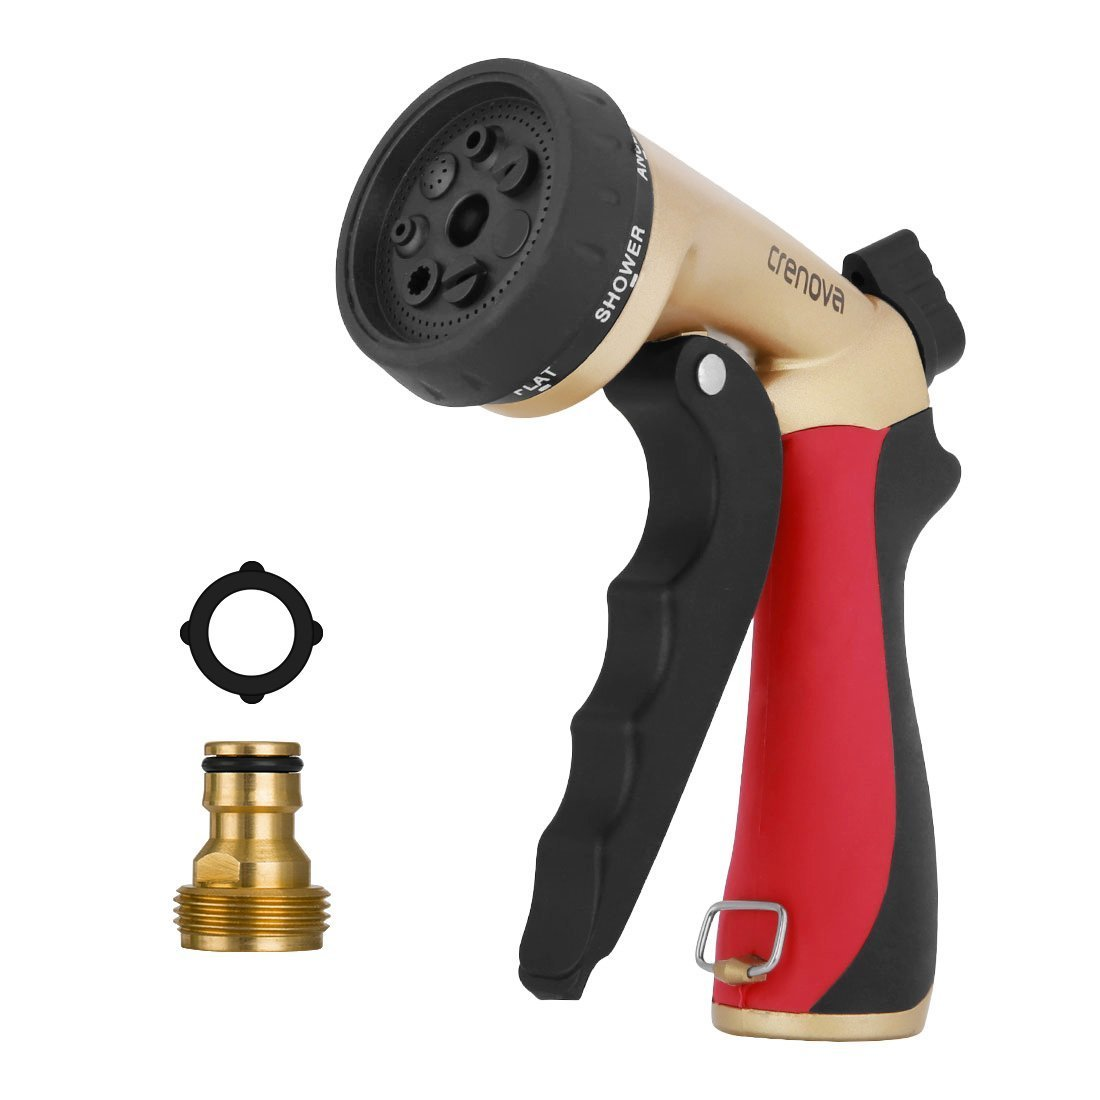 Crenova HN-05S pray Nozzle Garden Hose Nozzle Sprayer Gun - 7 Spraying Modes - Easy Flow Control Knob - Metal Nozzle High Pressure for Car Washing/Plant Watering/Sidewalk Cleaning/Pet Bathing Crenova 01